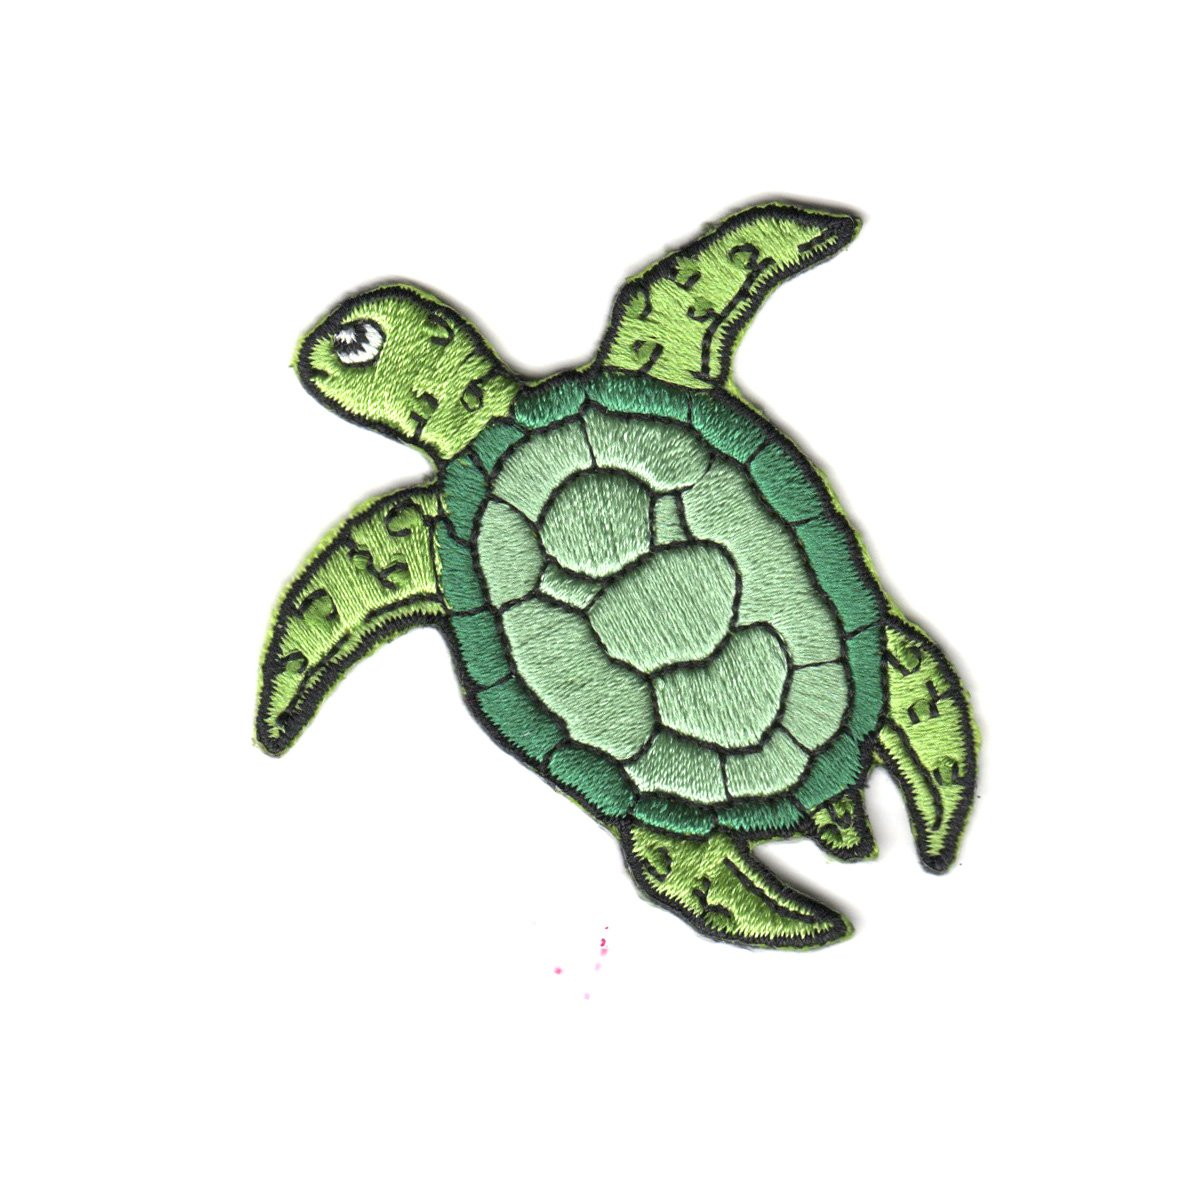 1181x1181 Sea Turtle Iron On Sticker Patch Pewpewpatches